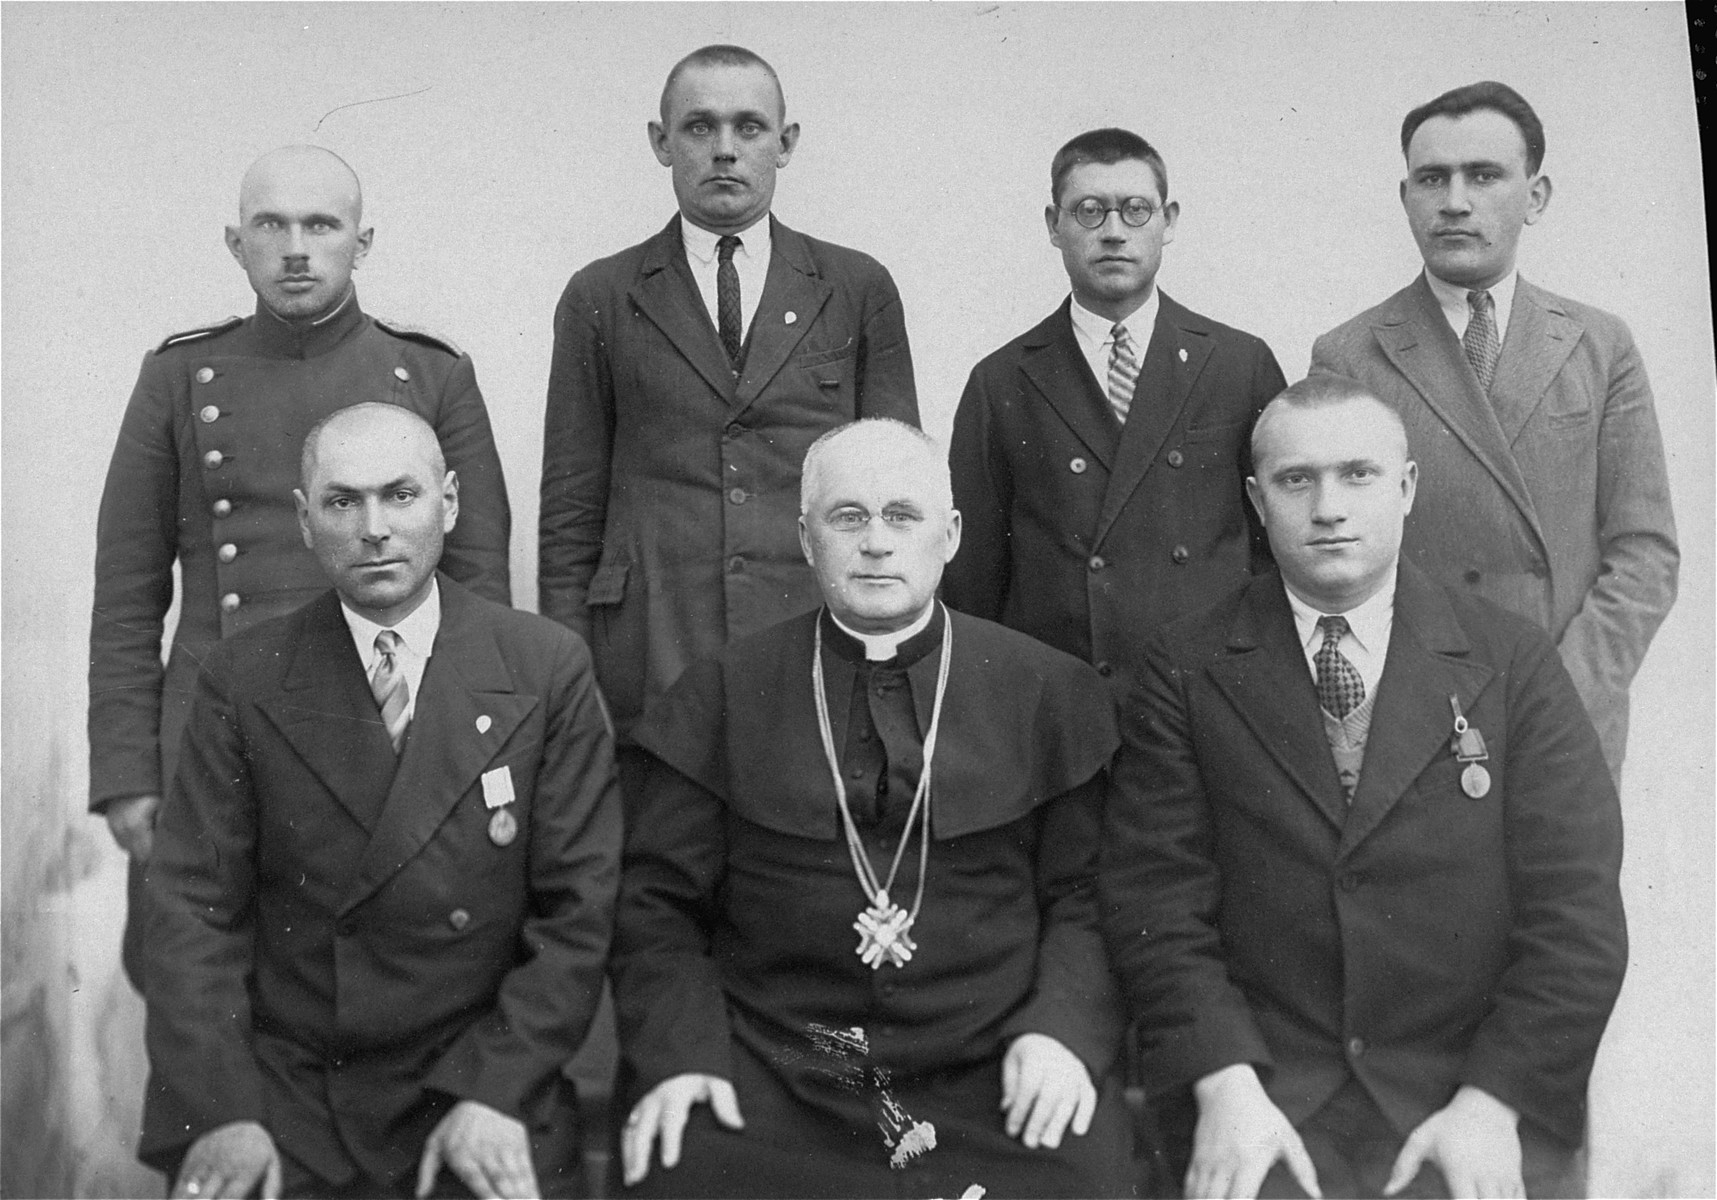 Group portrait of participants at a conference in Kovno.  Pictured (standing at the right) is the donor's uncle, Joseph Gar, a teacher in the Jewish Volksschule (elementary school) in Utena.